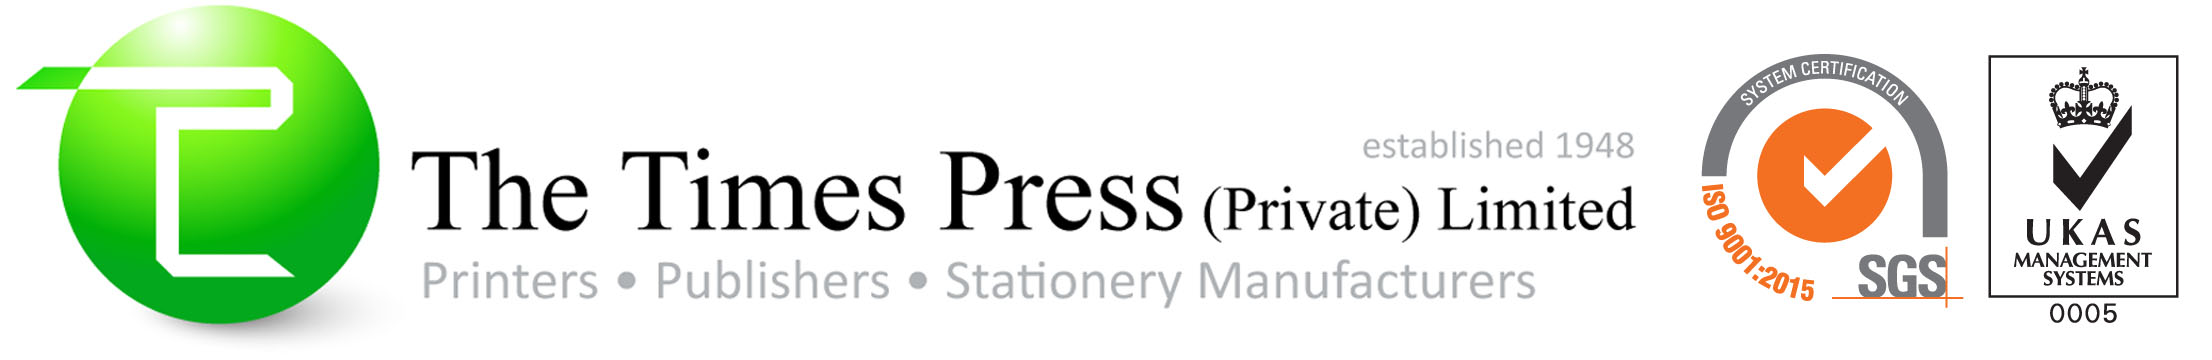 The Times Press (Private) Limited